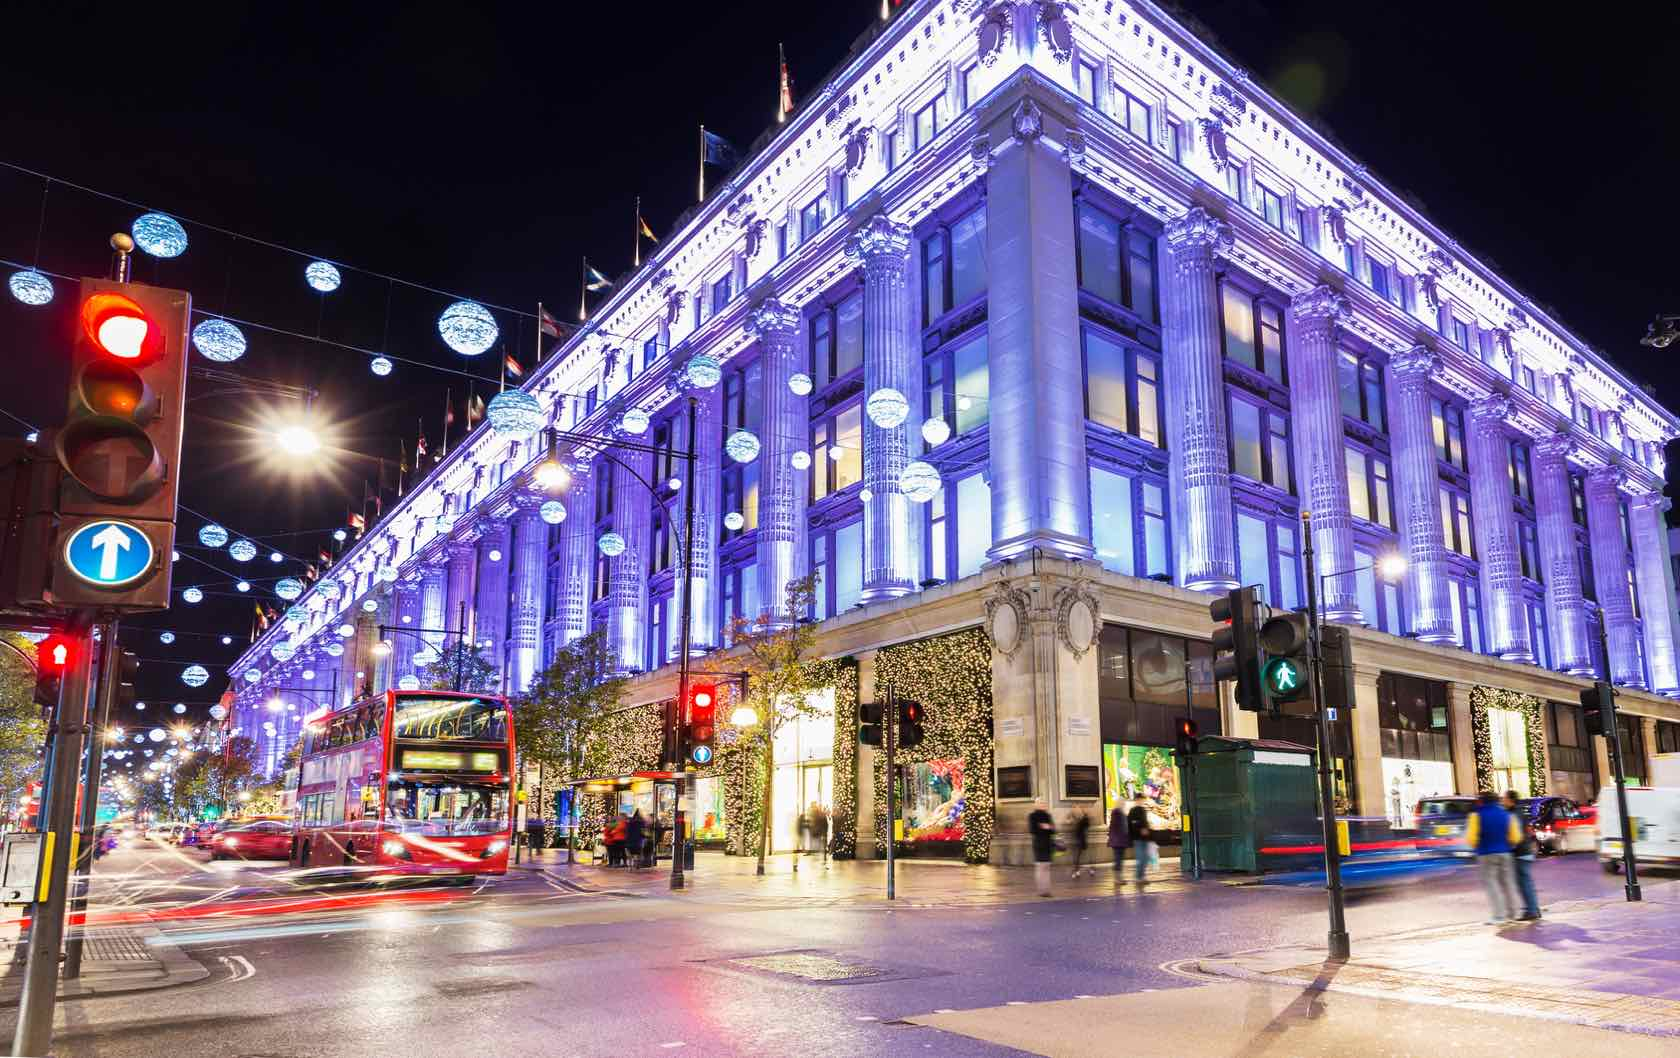 Christmas Shopping in London: The Best Holiday Shopping Spots